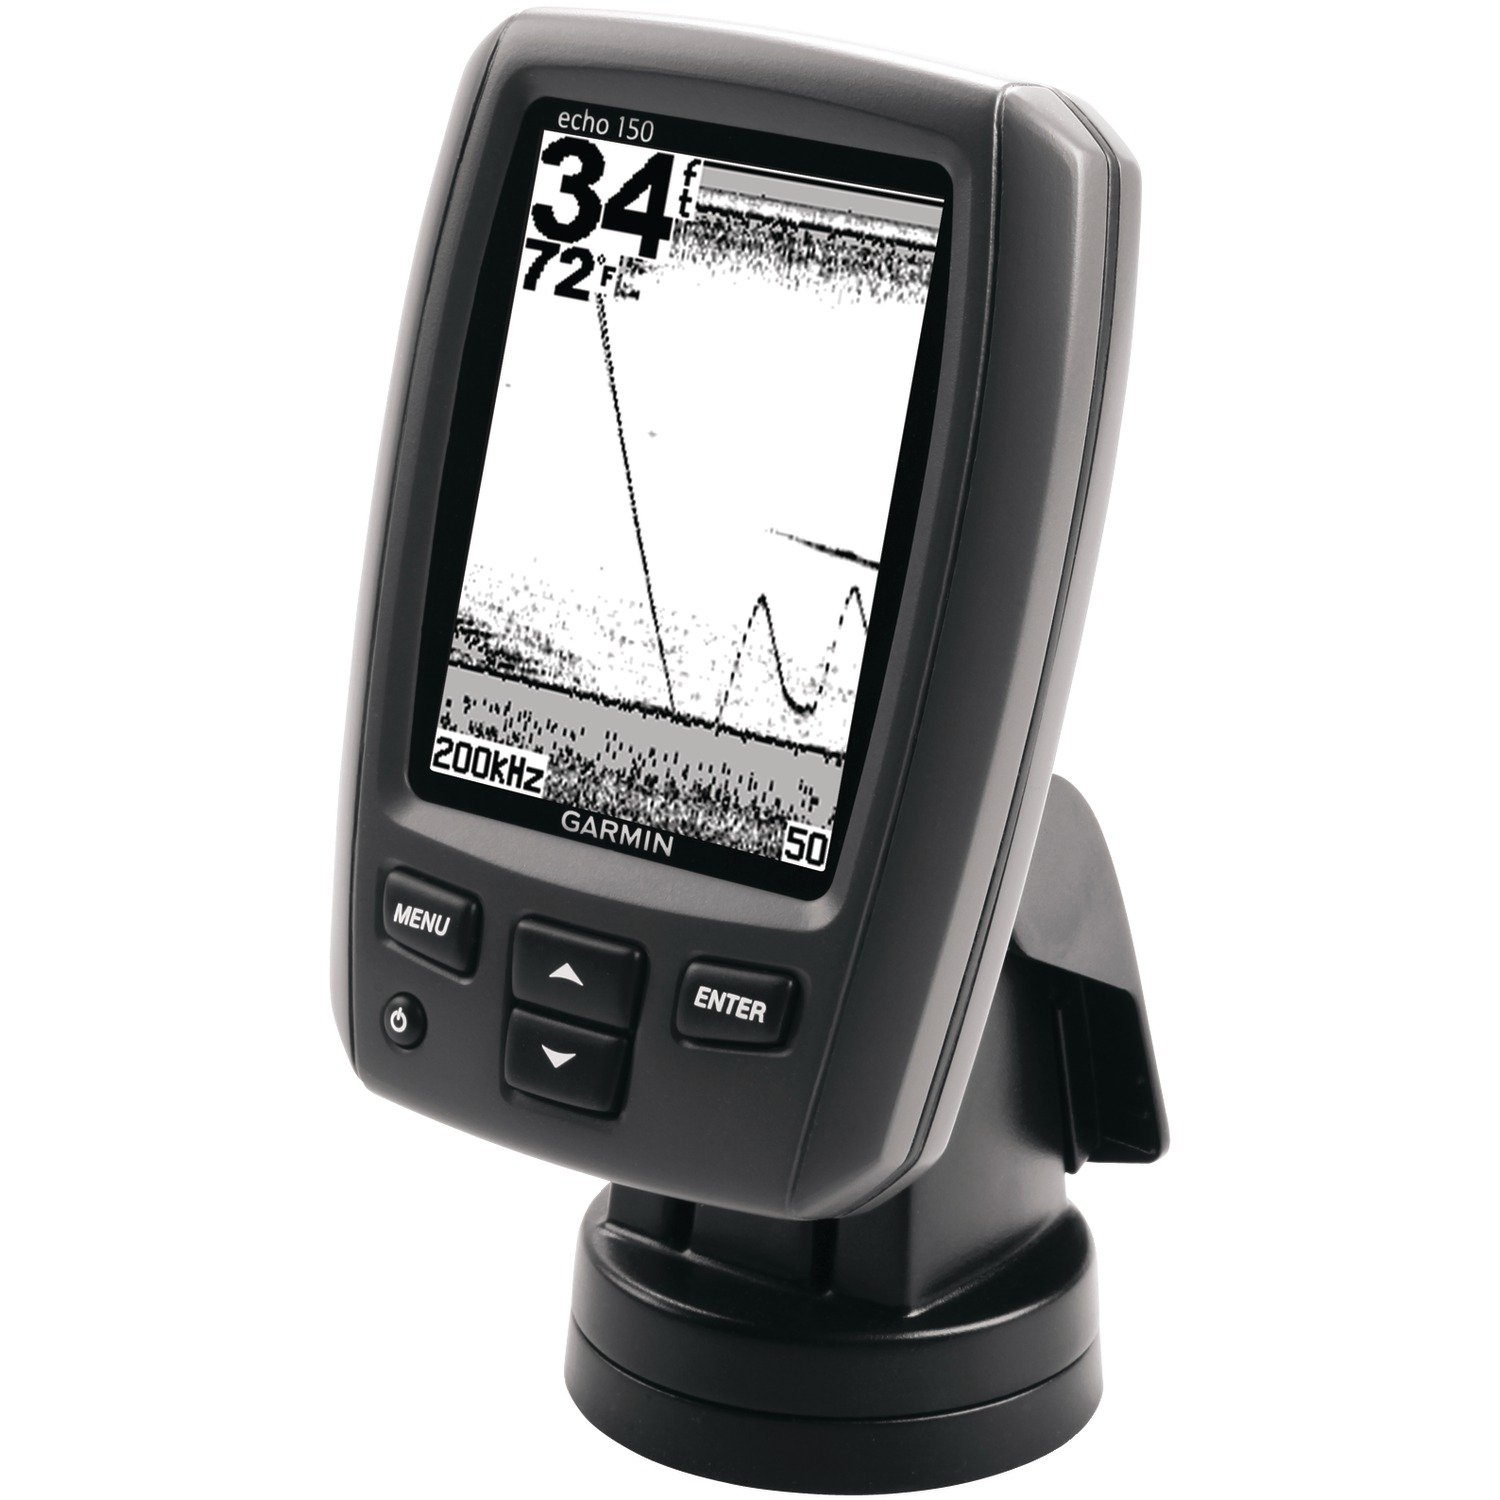 71fcypPgb0L._SL1500_ amazon com garmin echo 300c dual beam fishfinder (discontinued by  at gsmportal.co